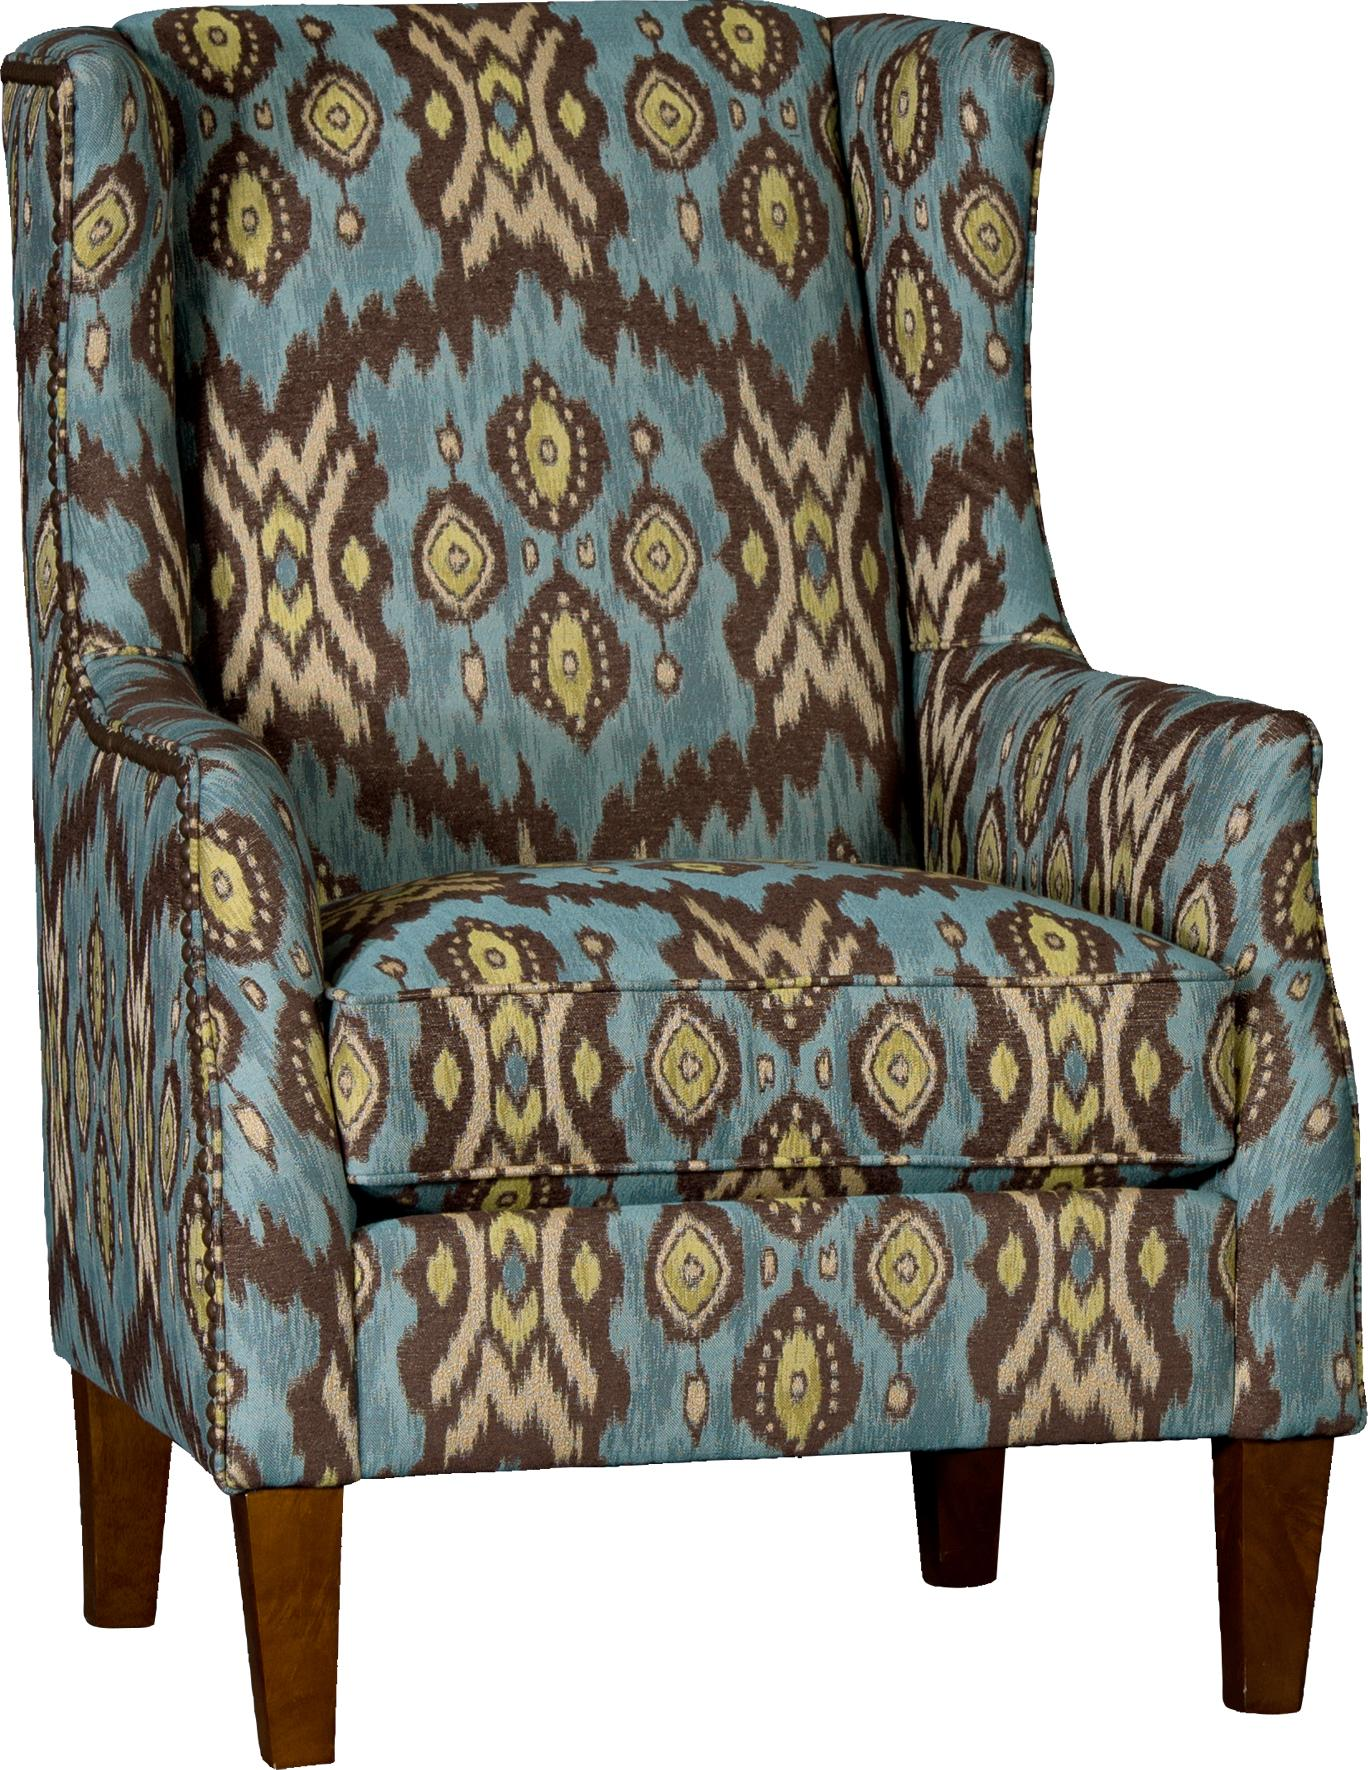 8840 Wing Chair by Mayo at Johnny Janosik